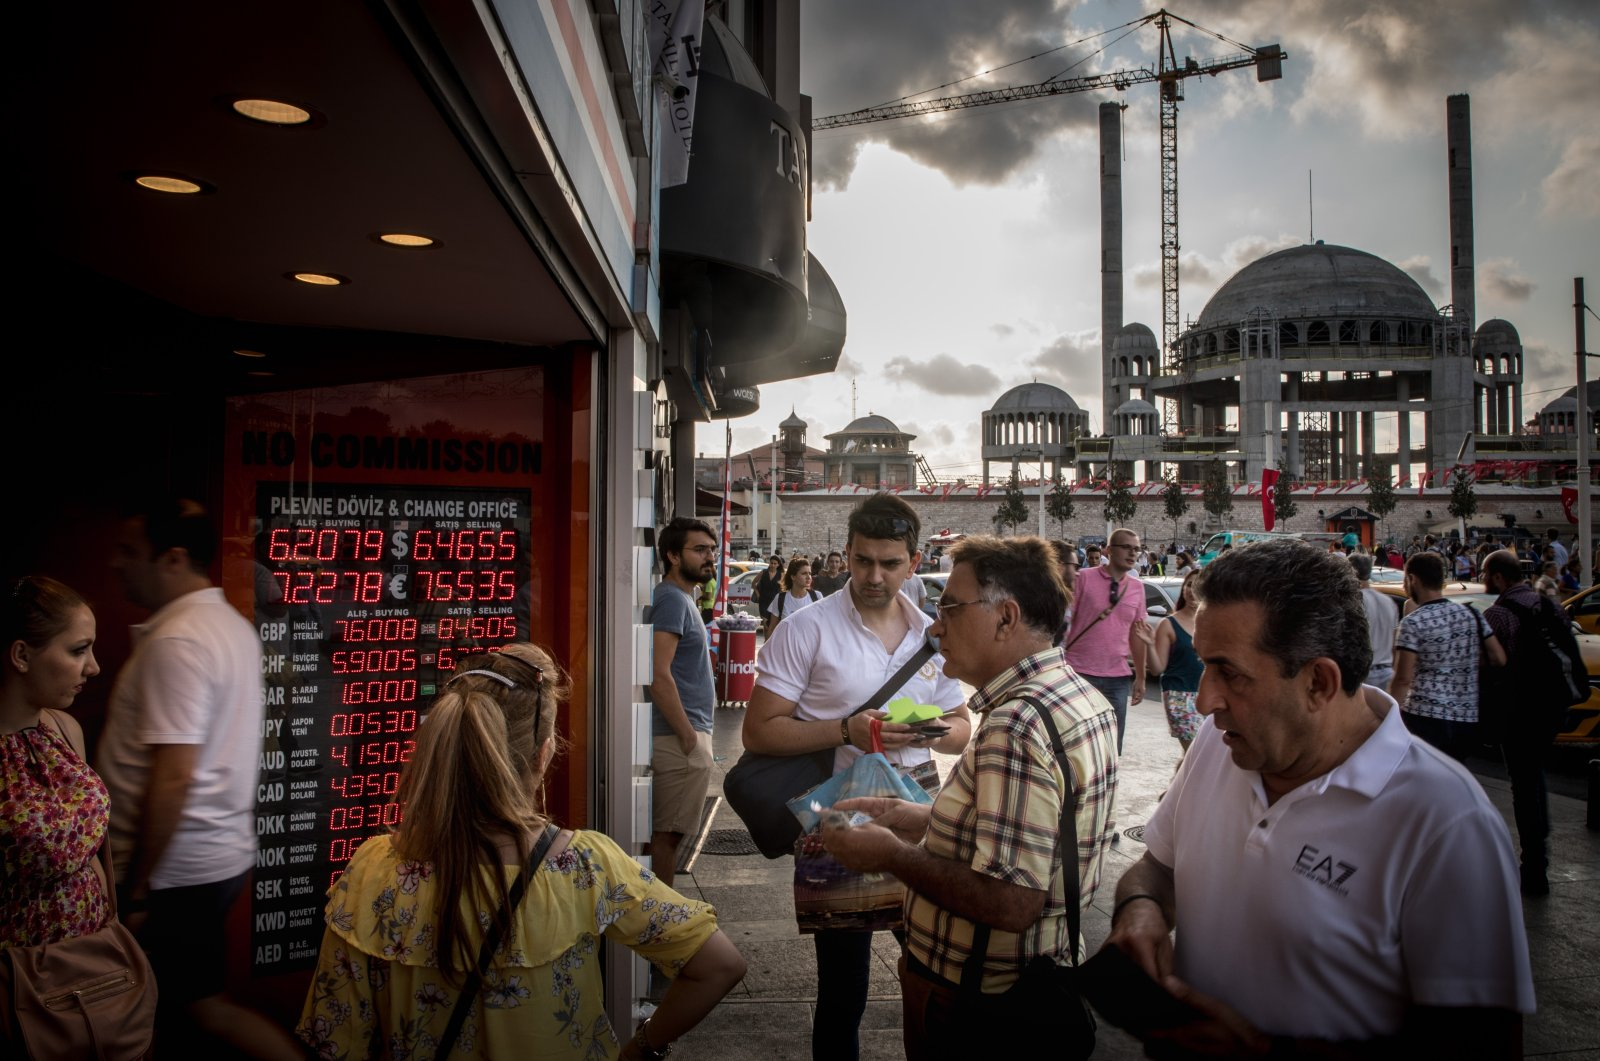 People wait outside a currency exchange office in Taksim Square, in Istanbul, Turkey, Aug. 29, 2018. (Getty Images)